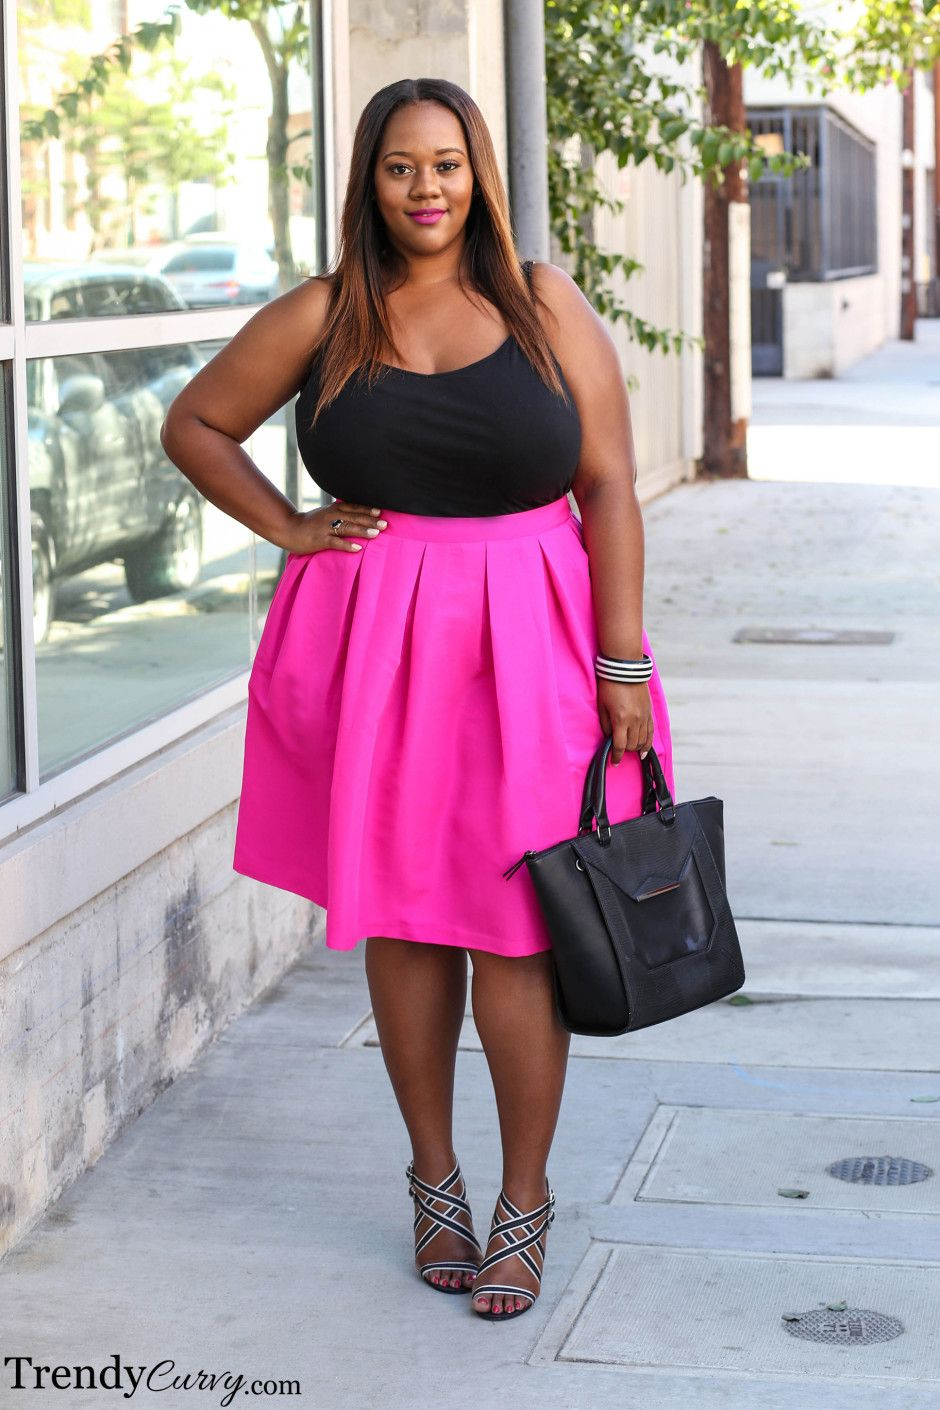 CURVY BEAUTIES // Plus Size Fashion pink skirt | My fashionista ...